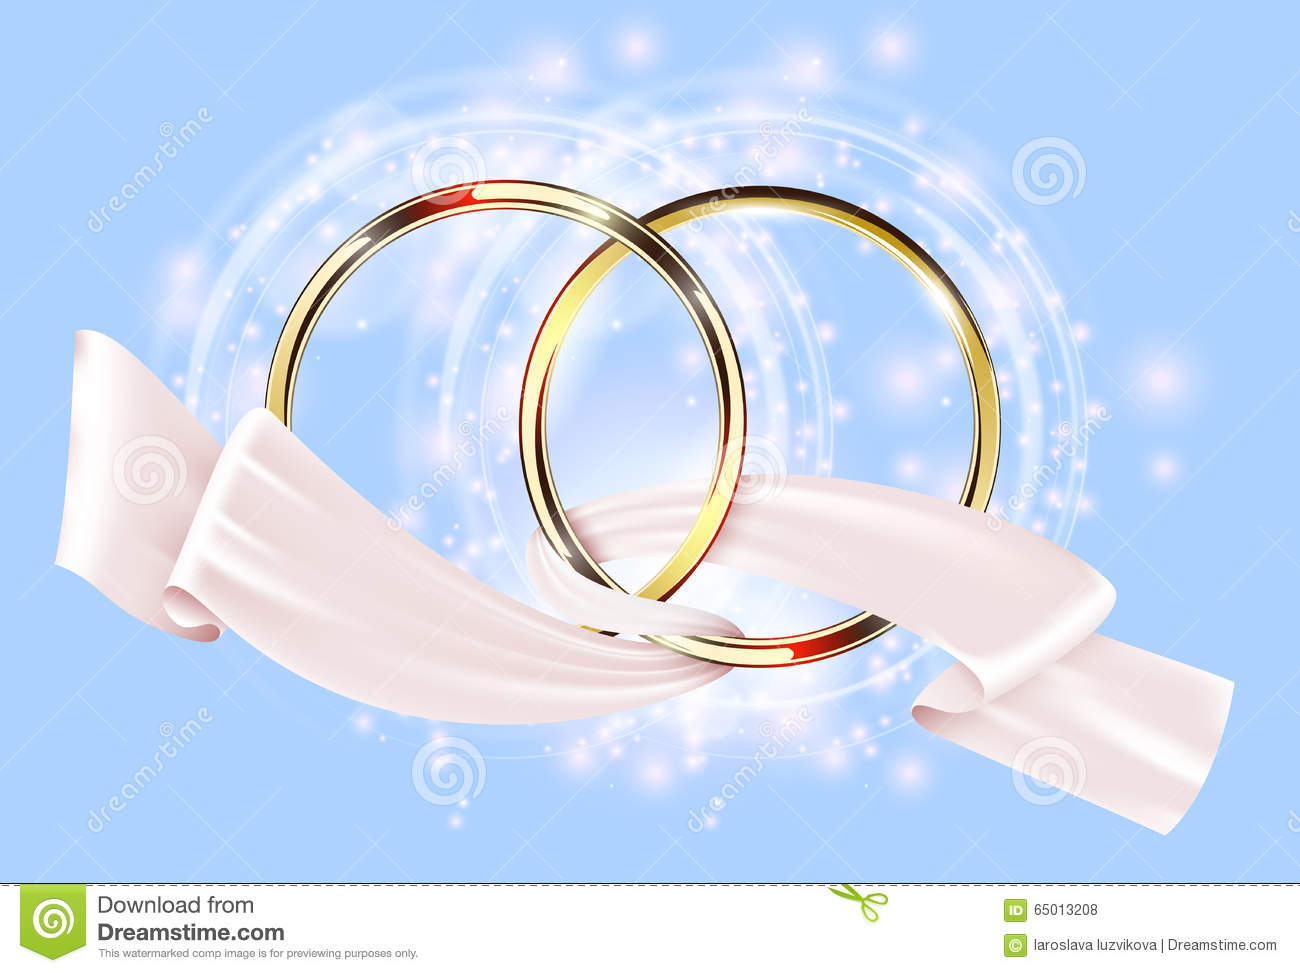 Two Golden Wedding Ring With White Ribbon Stock Vector